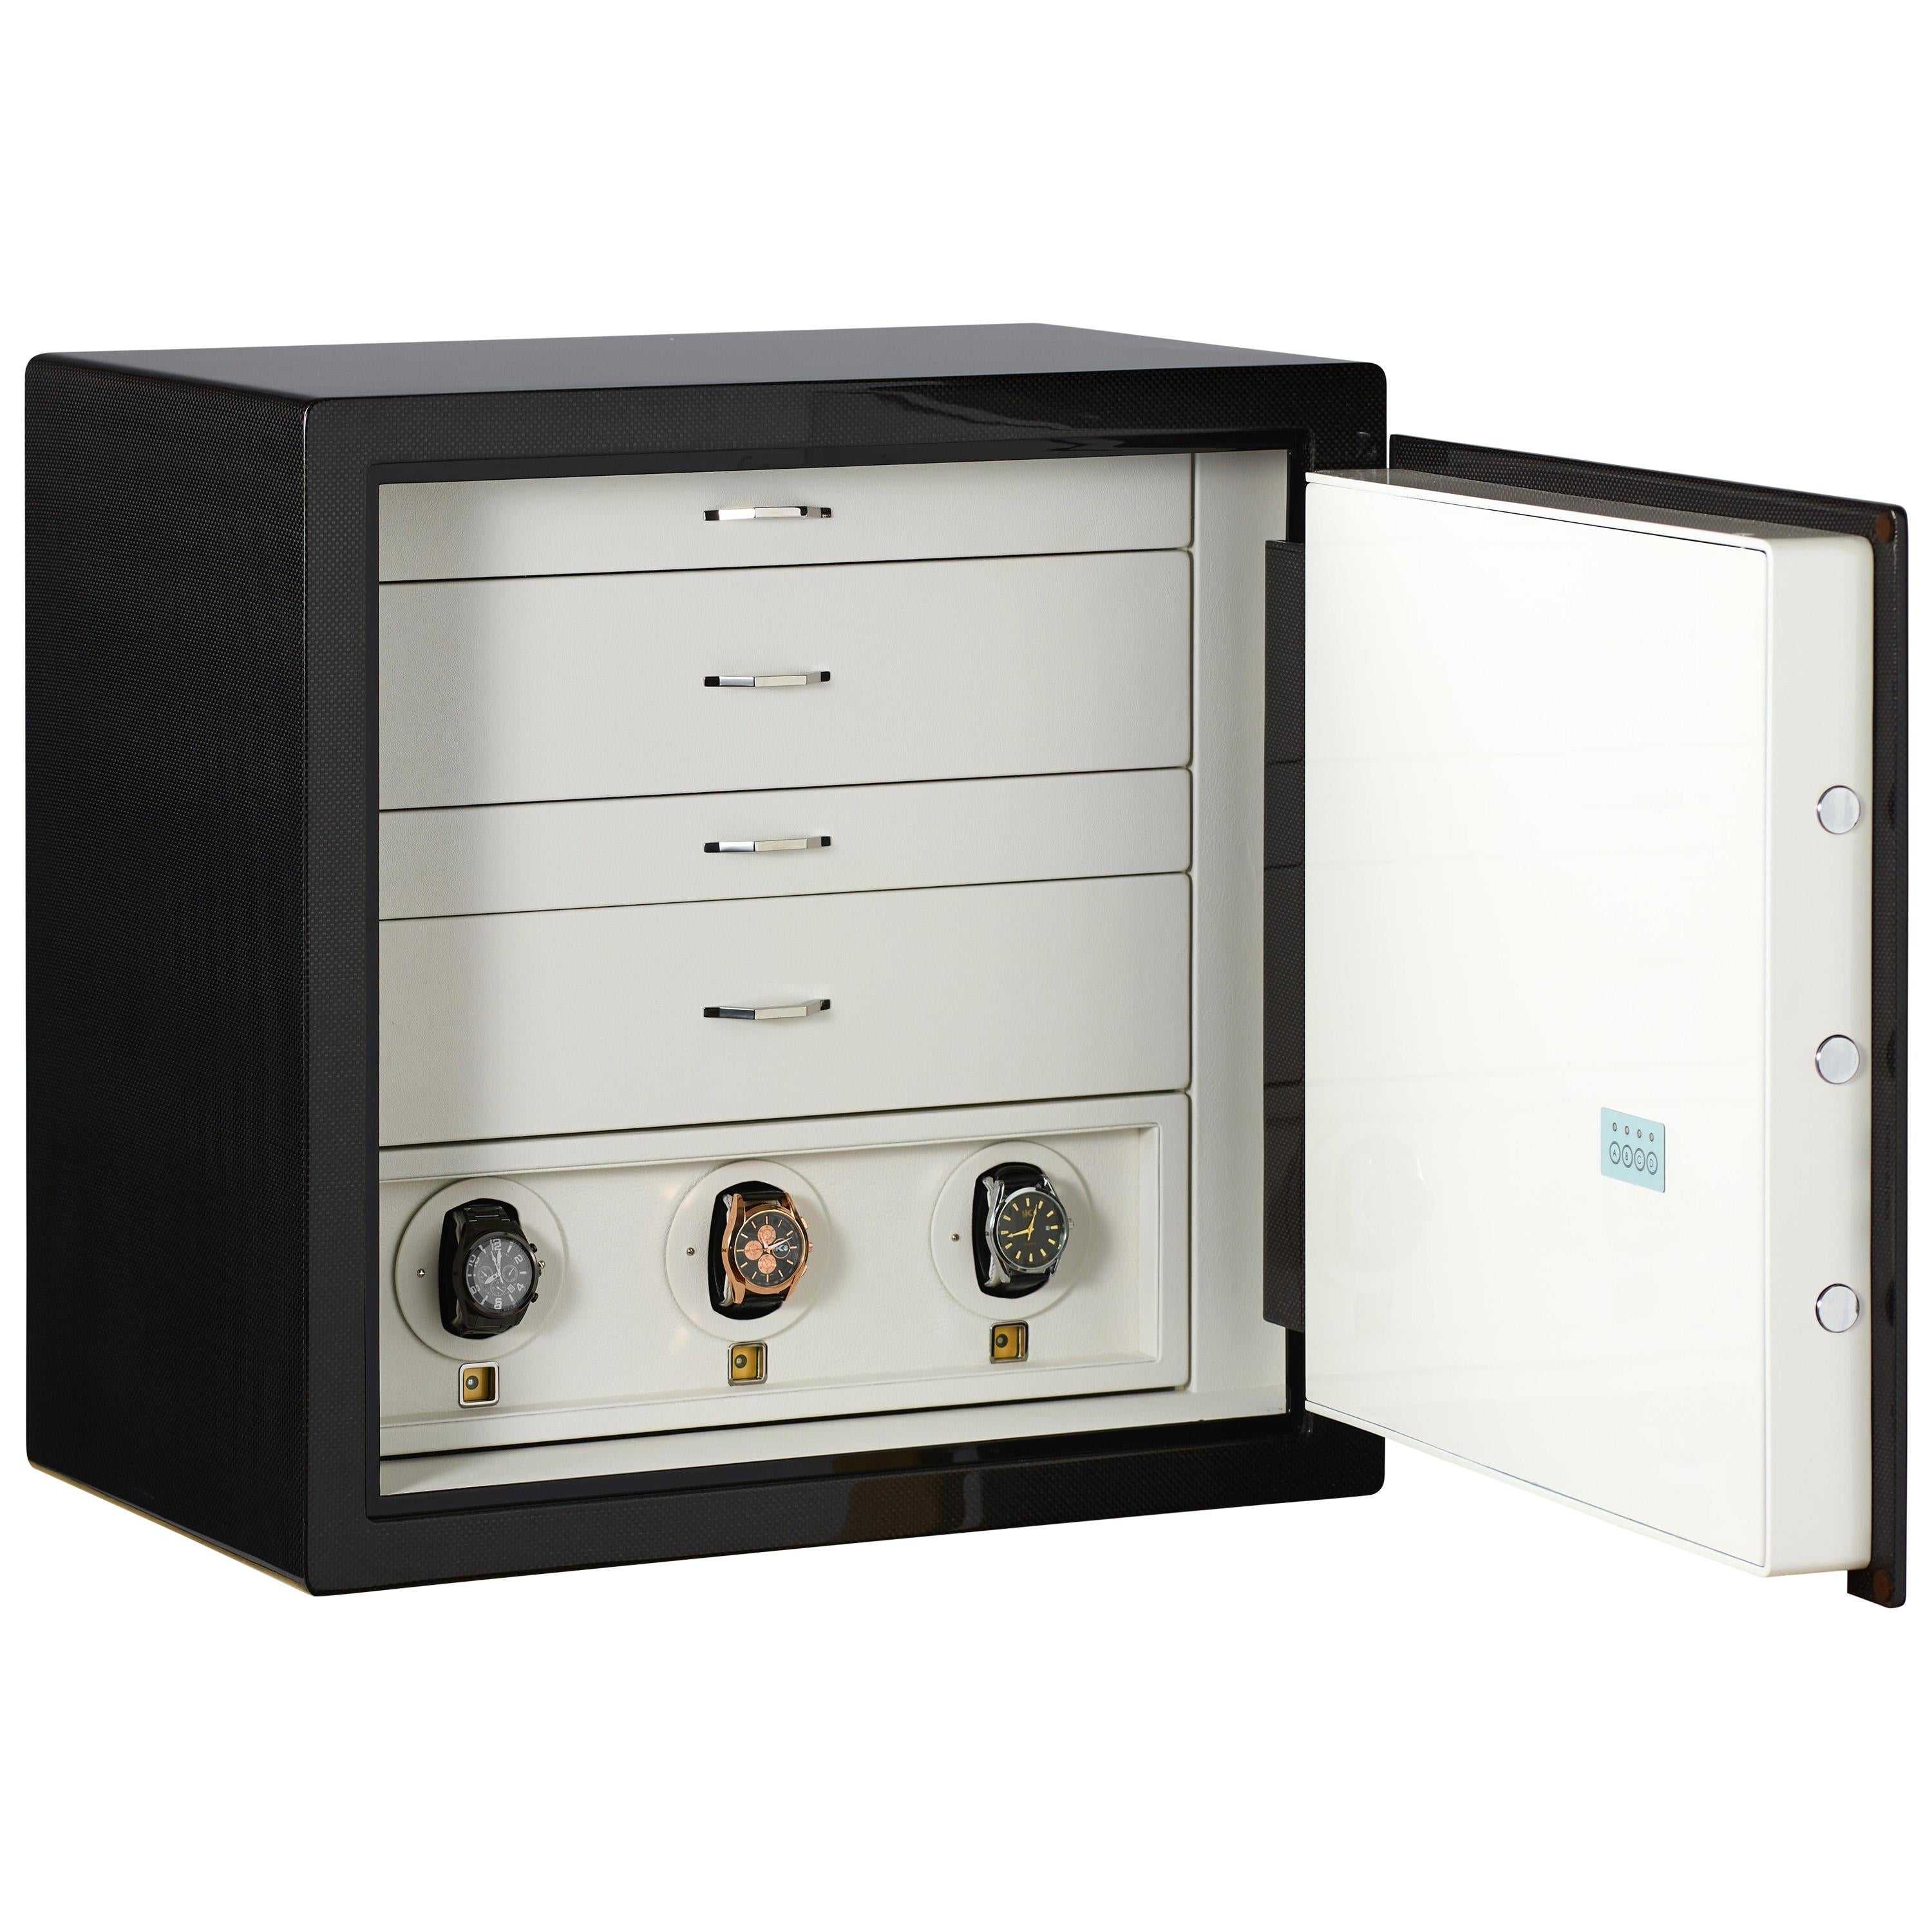 Agresti Armored Jewel Safe Polished Carbon Fiber Front and 3 Watch Winders